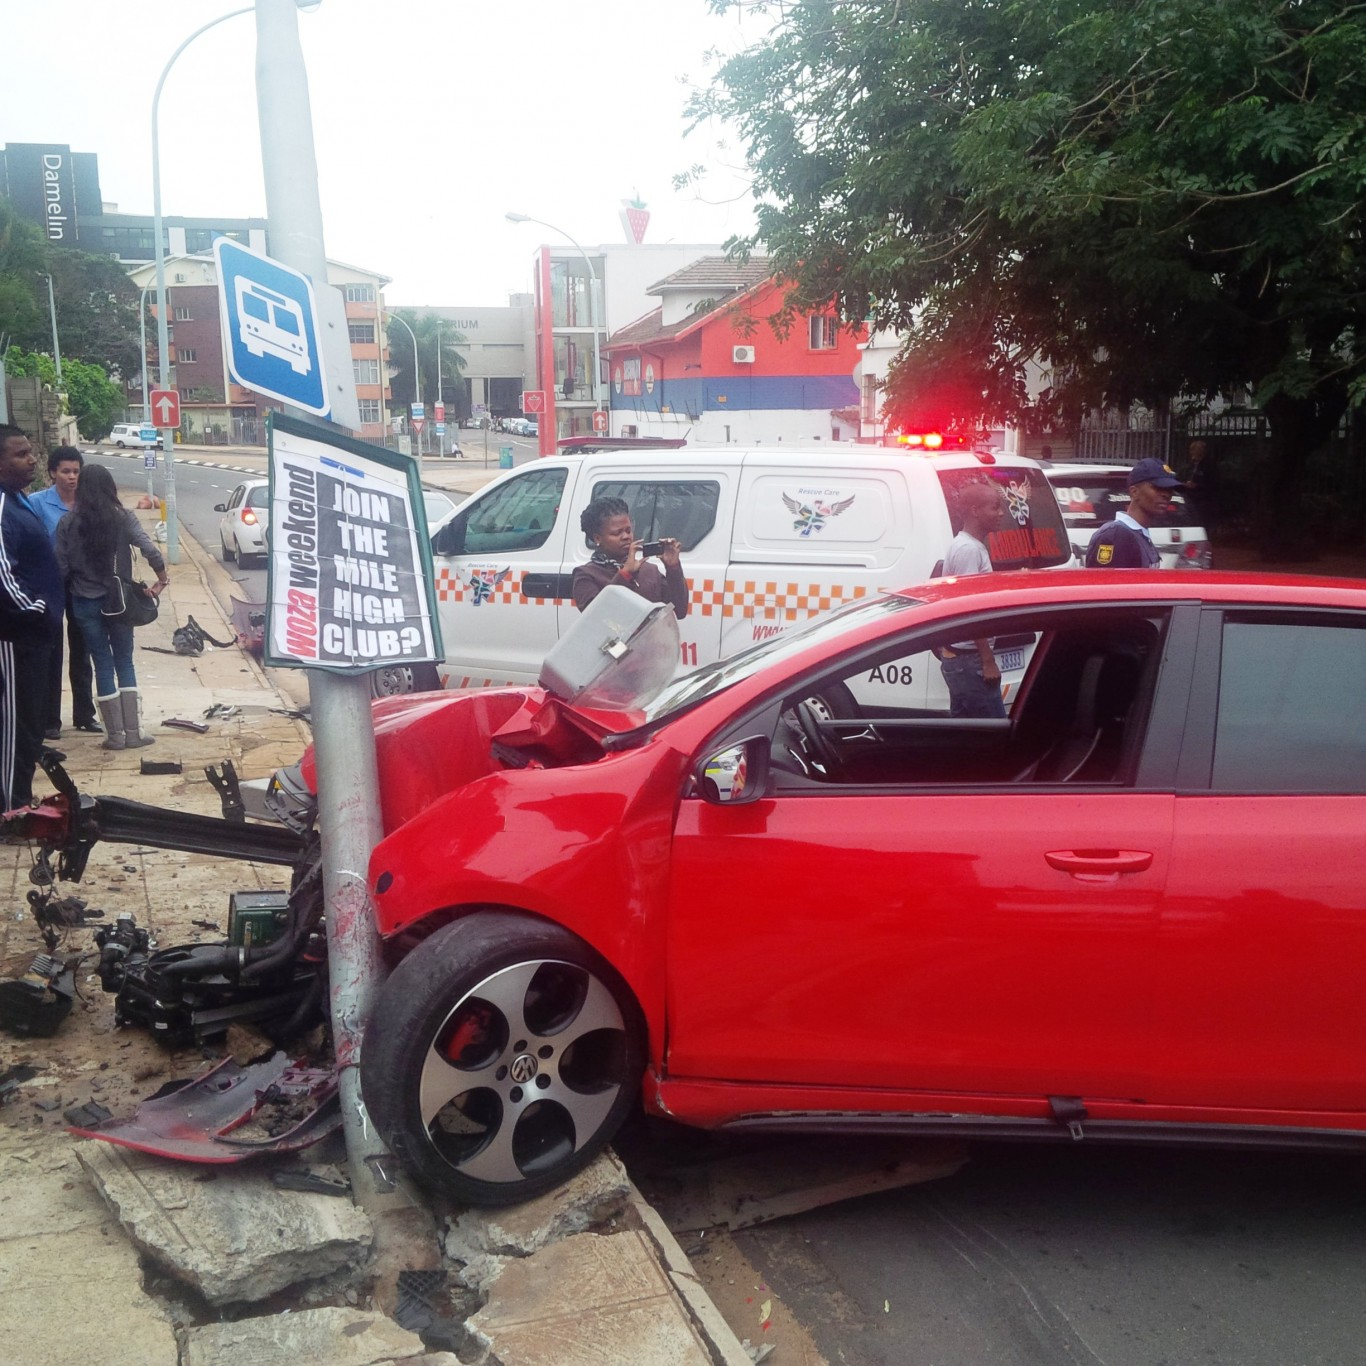 South Coast P200 taxi crash leaves six injured